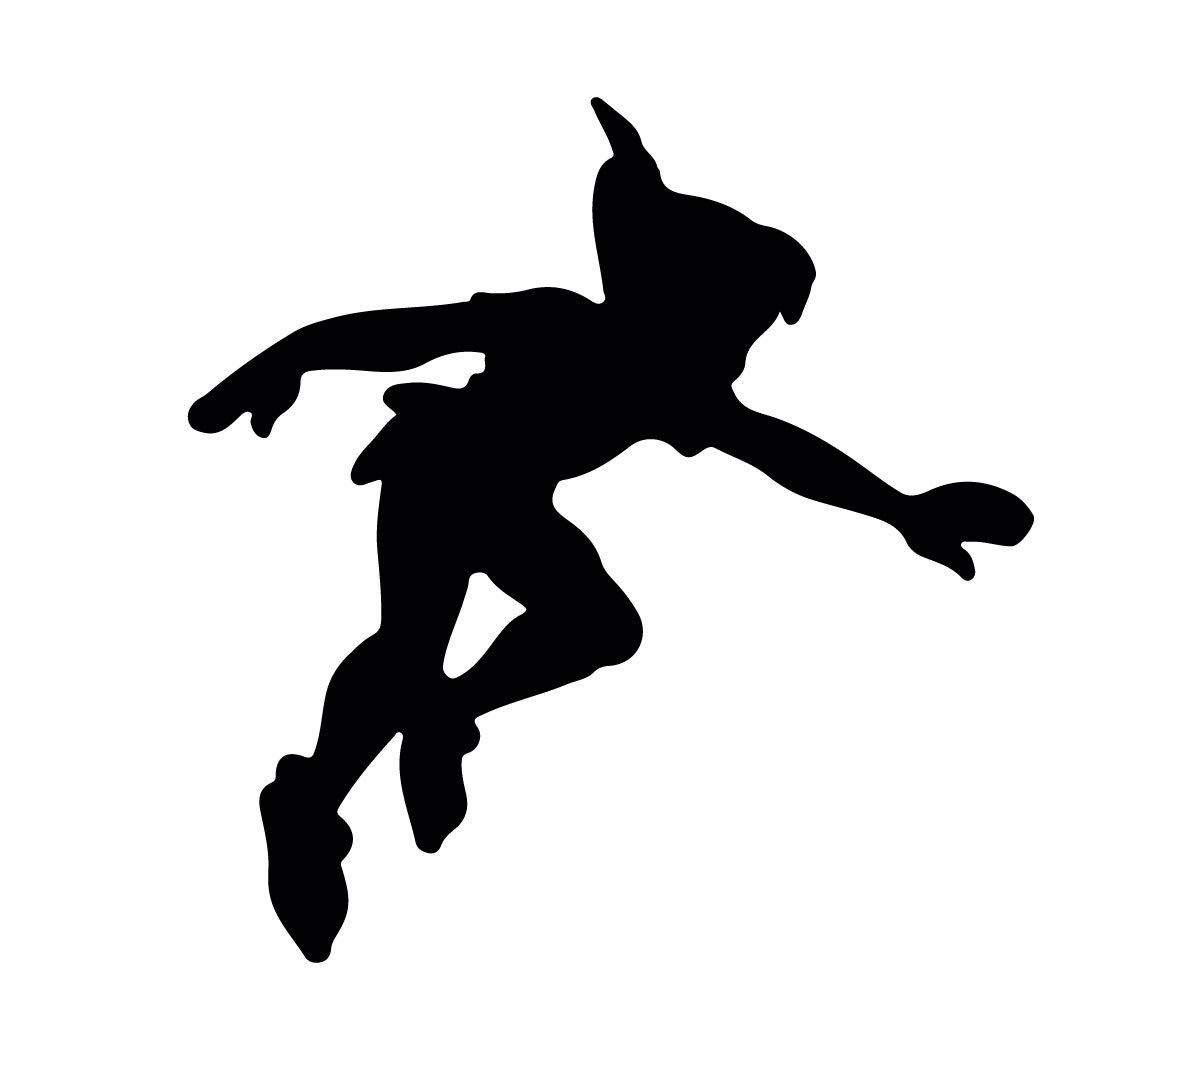 Peter Pan Wall Decal - Shadow - Disney Vinyl Sticker Silhouette Kid's Playroom, Bedroom Decoration Nursery Decor Custom Vinyl Decor